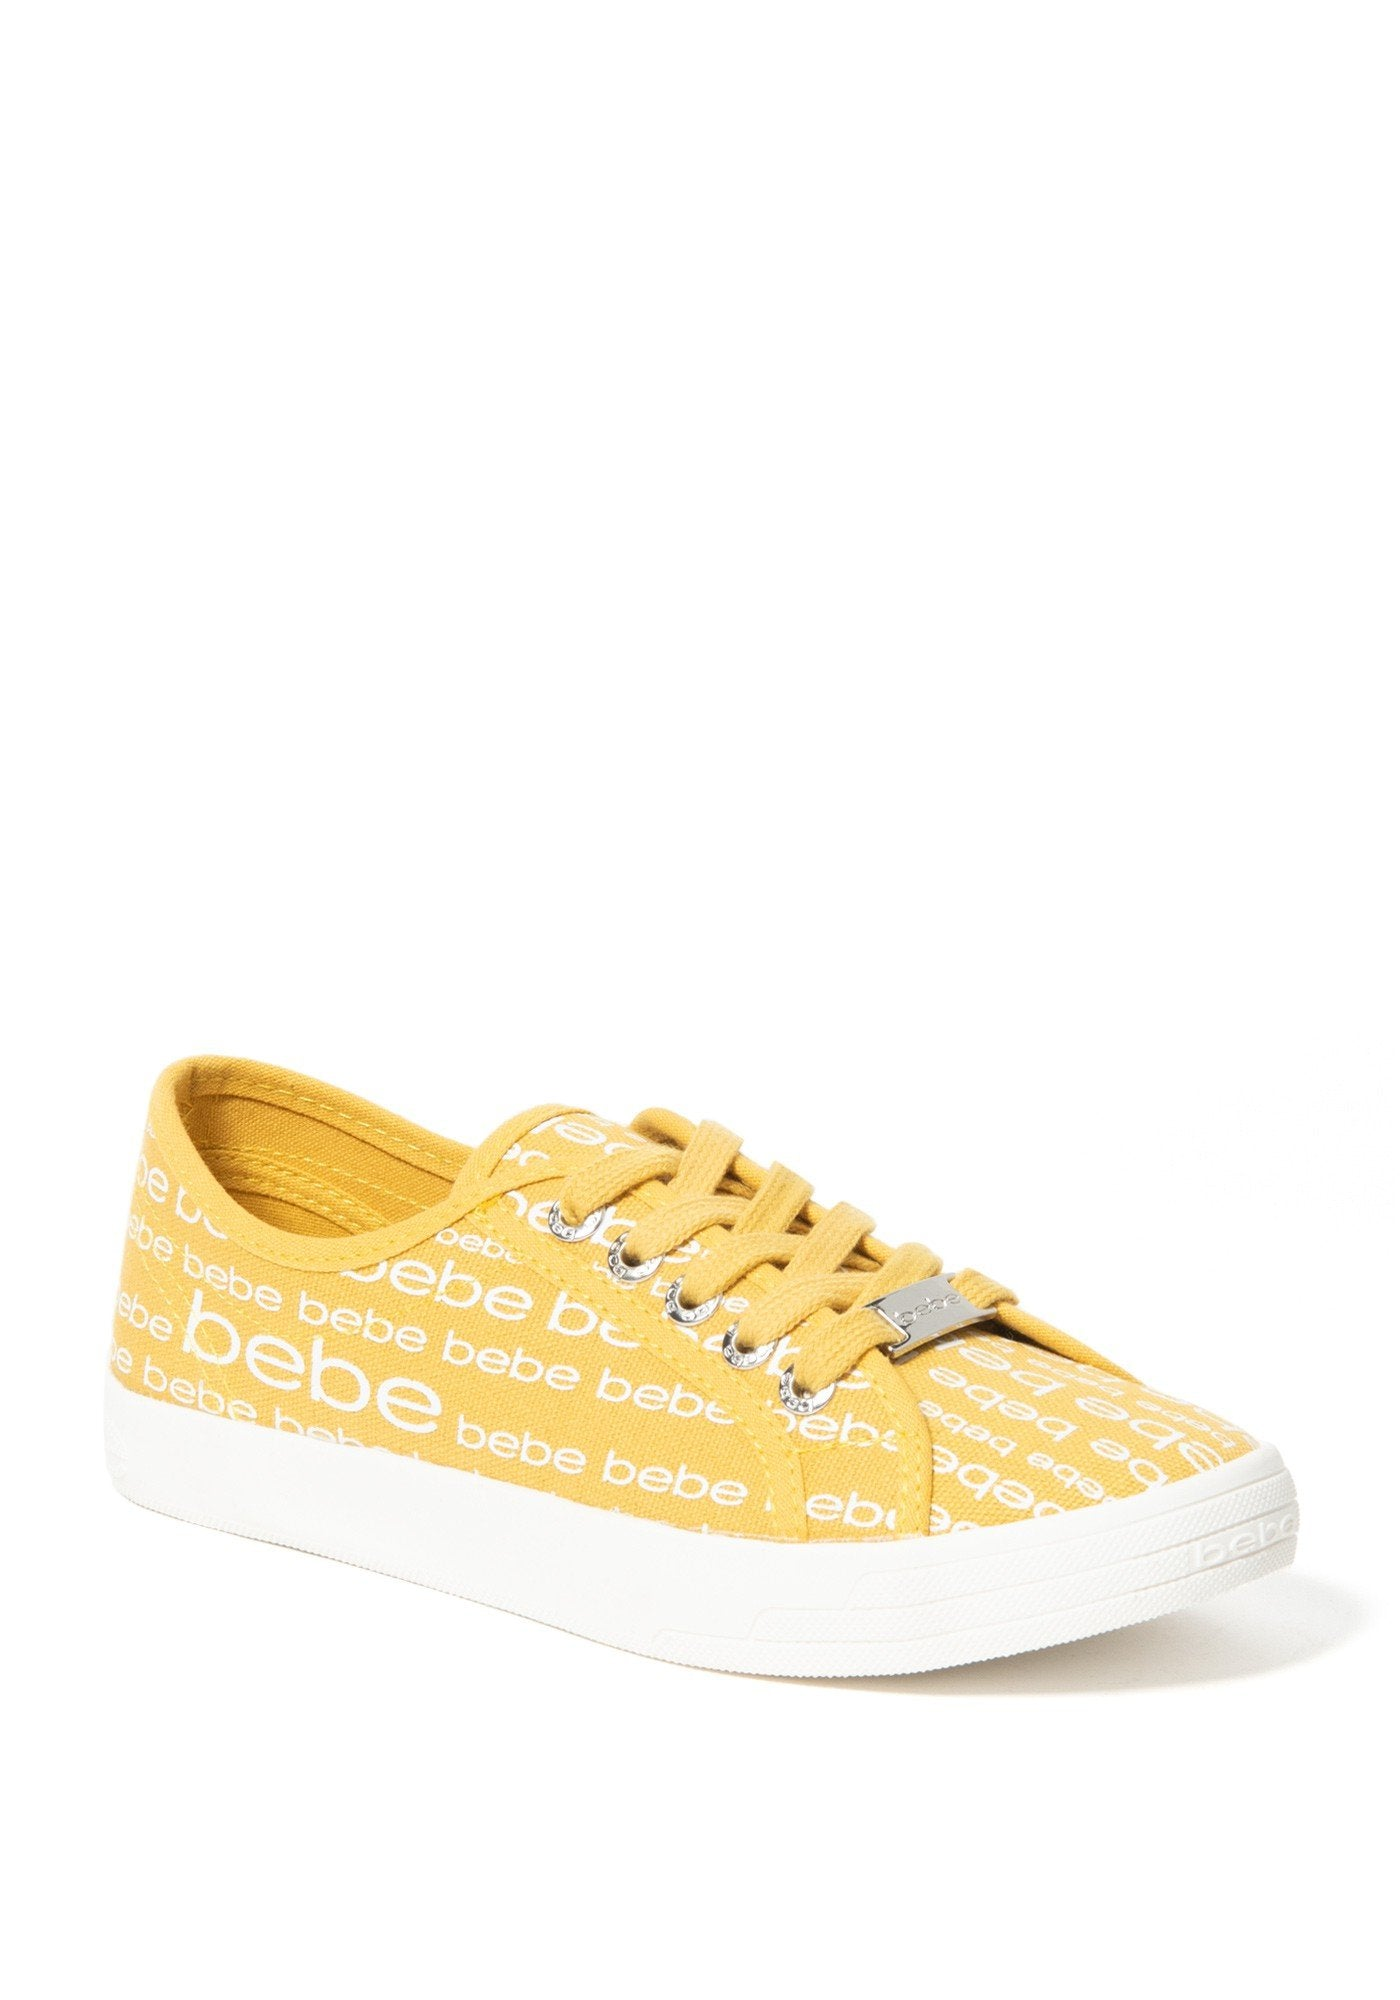 Bebe Women's Daylin Logo Sneakers, Size 6 in Yellow Synthetic